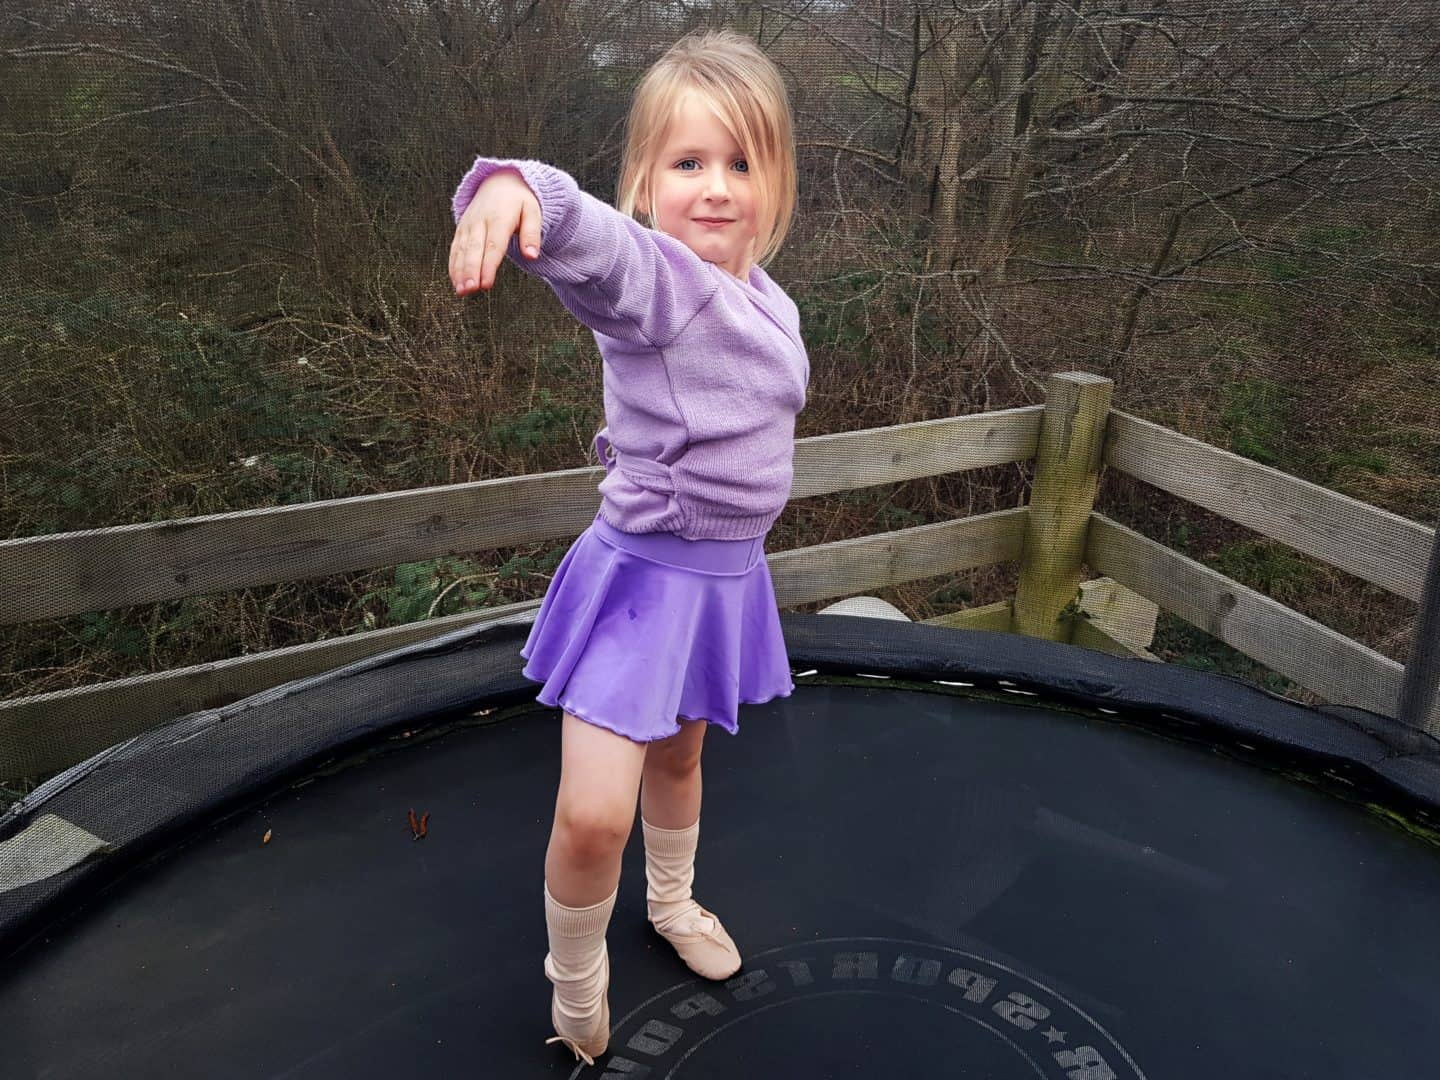 Dance Gear review girl in purple ballet leotard and cardigan